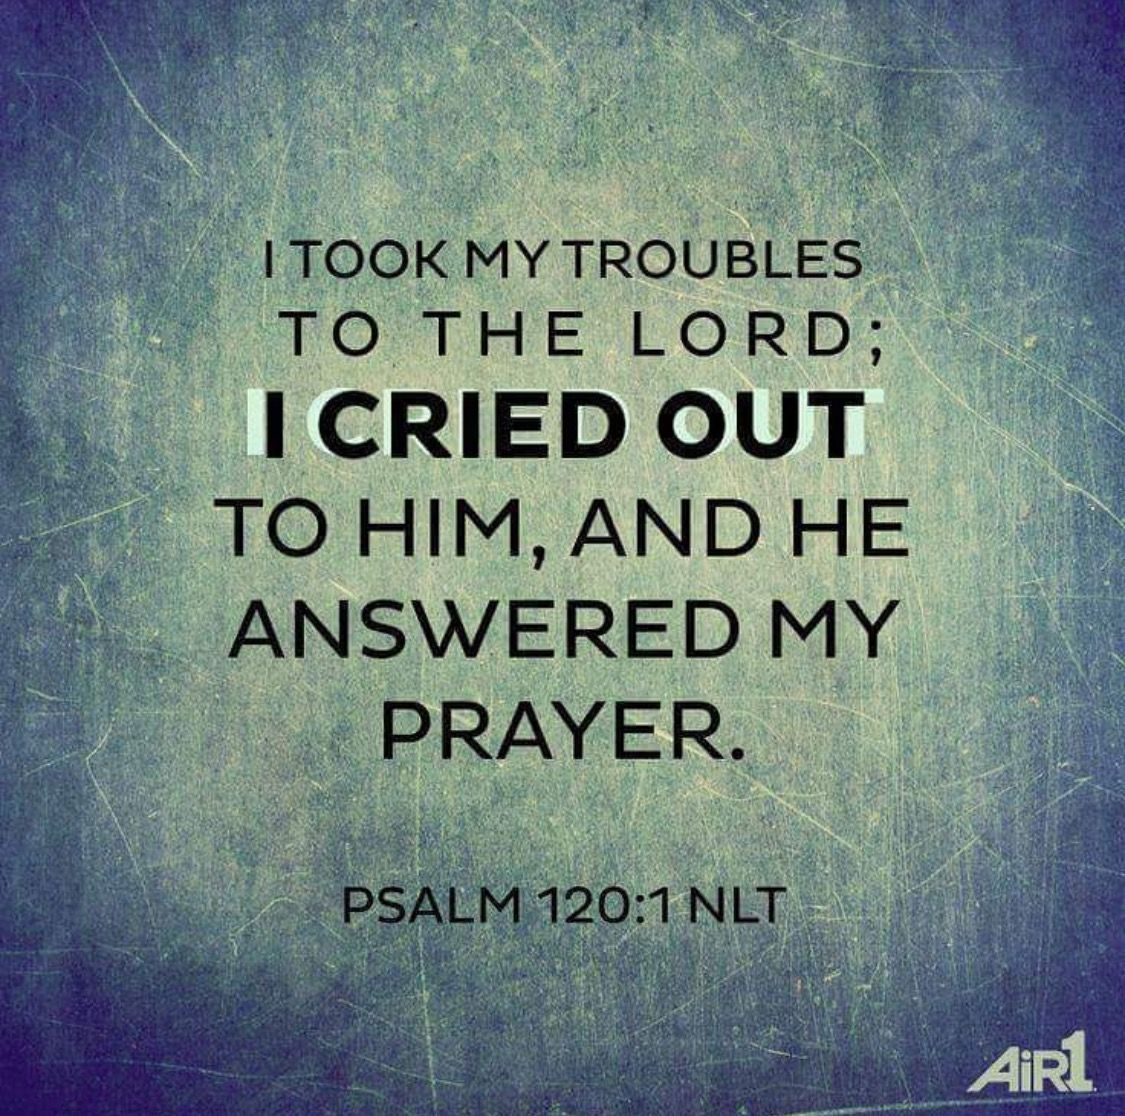 Not all the time in the way I think I want it to be answered.  Praying is not easy, anyone who says it is is not doing it right.  I mean i can talk to Heavenly Father all day long and be fine but when I NEED answers to trials and tribulations it is way harder to work with Him.